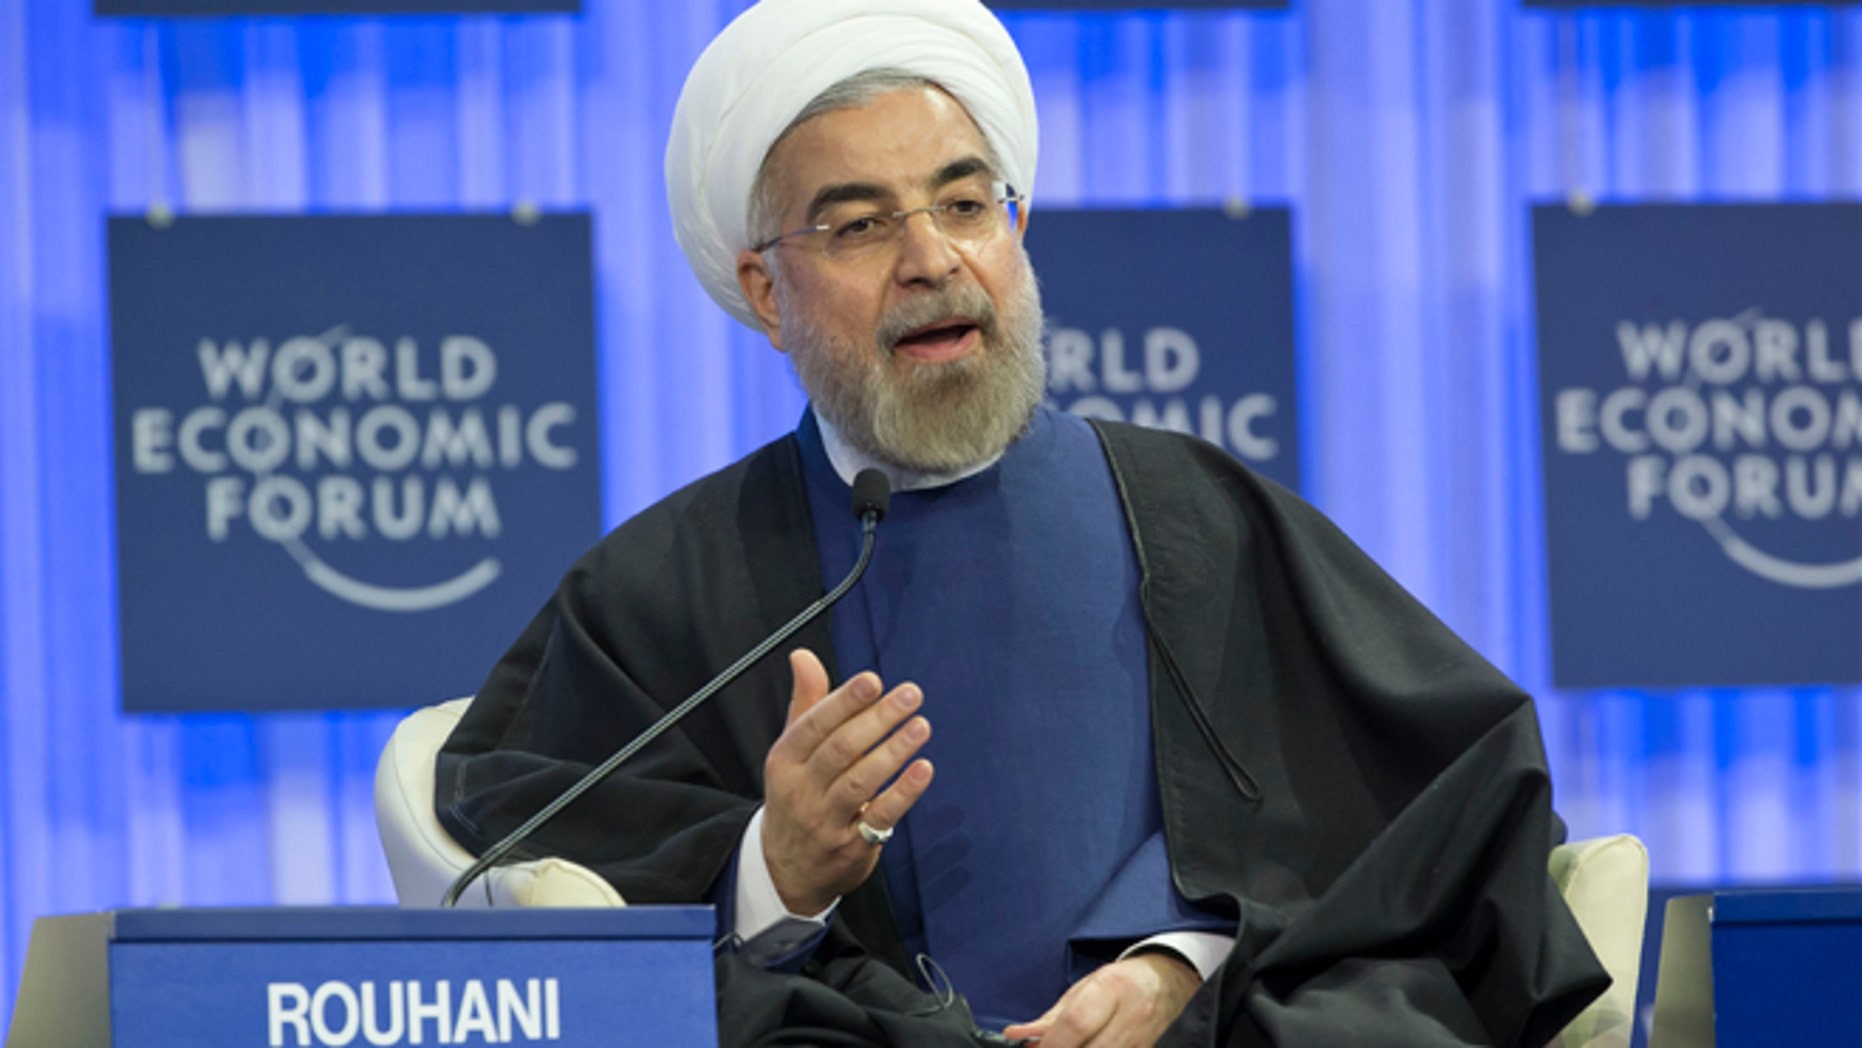 Jan. 23, 2014: Iranian President Hassan Rouhani gestures as speaks during a session of the World Economic Forum in Davos, Switzerland.